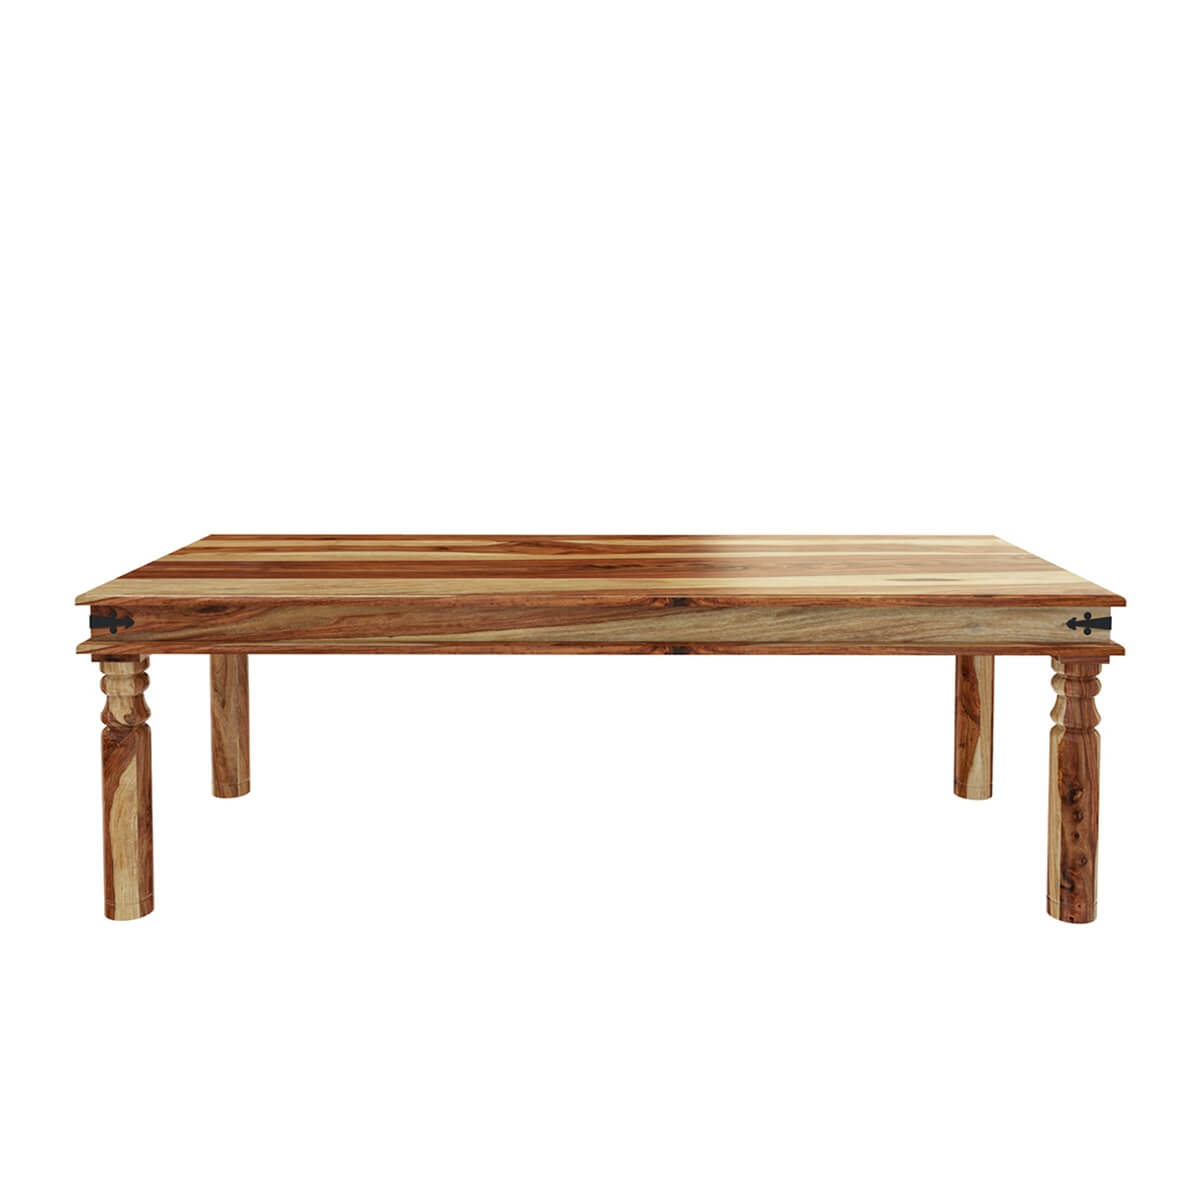 Rustic Wooden Dining Tables ~ Dallas ranch large solid wood rustic dining table